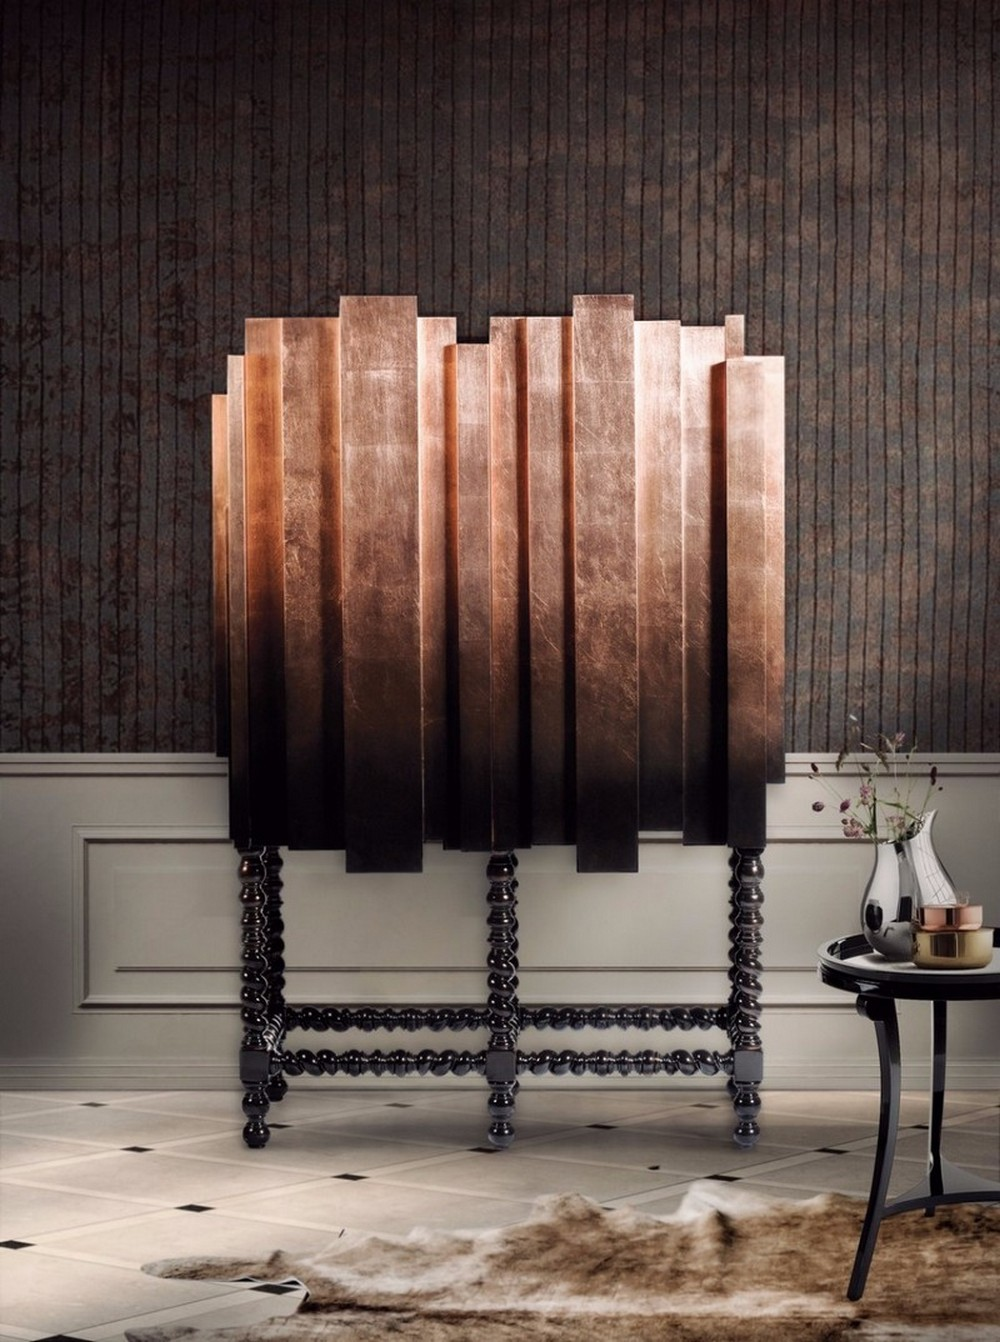 Incredible Furniture Designs From Boca do Lobo's 2019 Collection furniture designs Incredible Furniture Designs From Boca do Lobo's 2019 Collection Incredible Furniture Designs From Boca do Lobos 2019 Collection 2